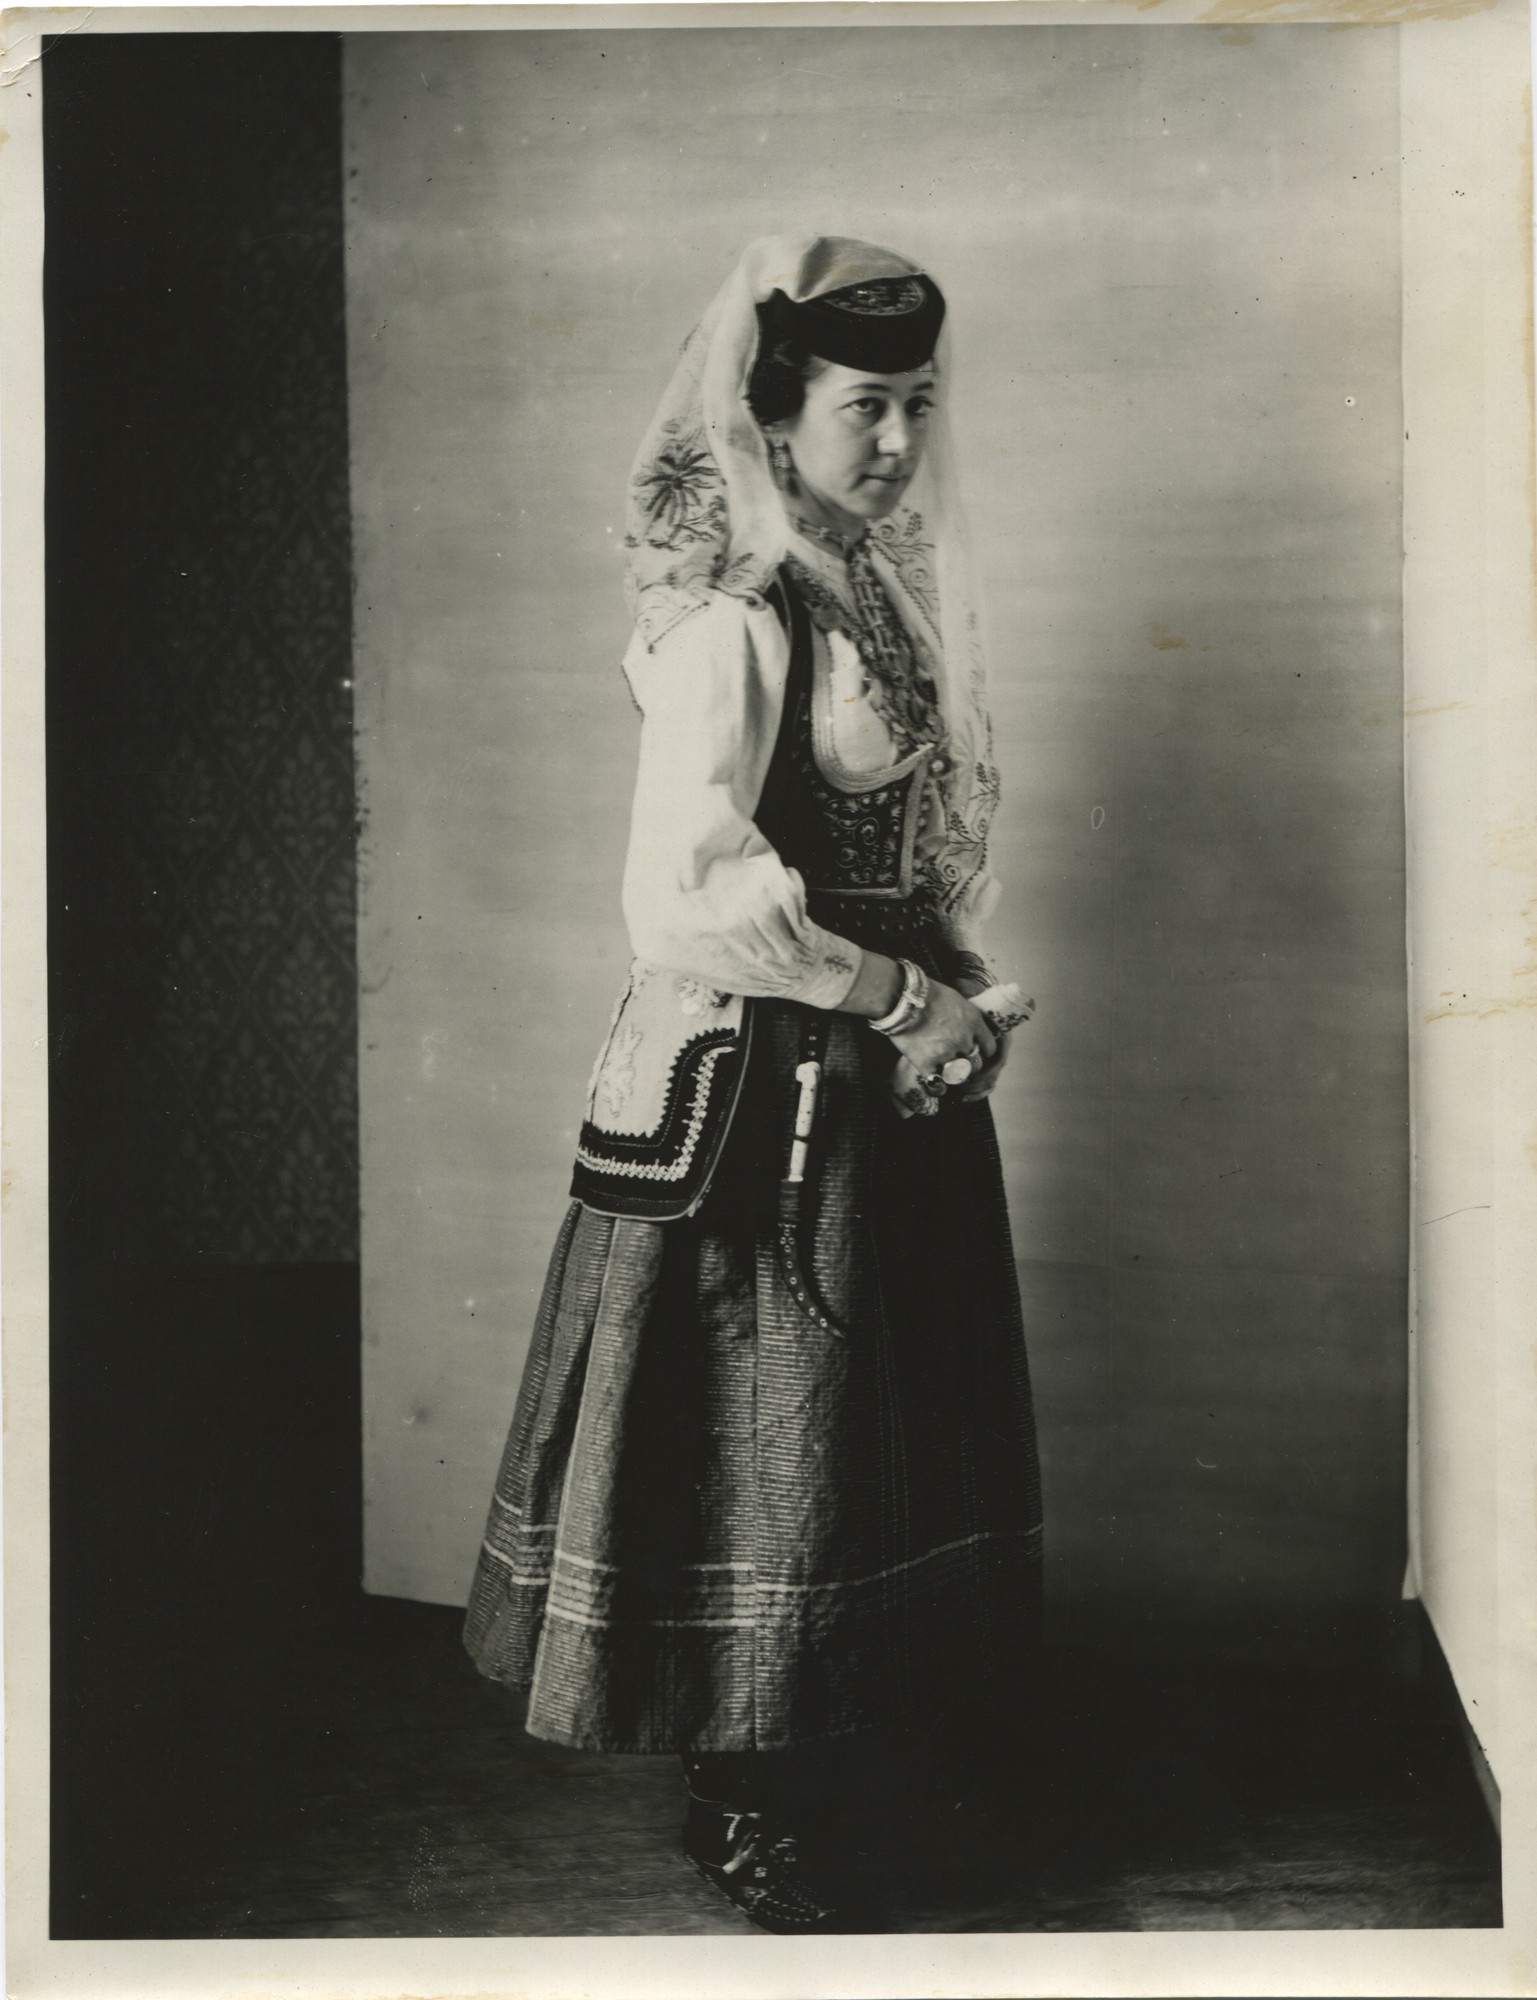 Woman's Herzegovinian dress, © The Historical Archive of Sarajevo